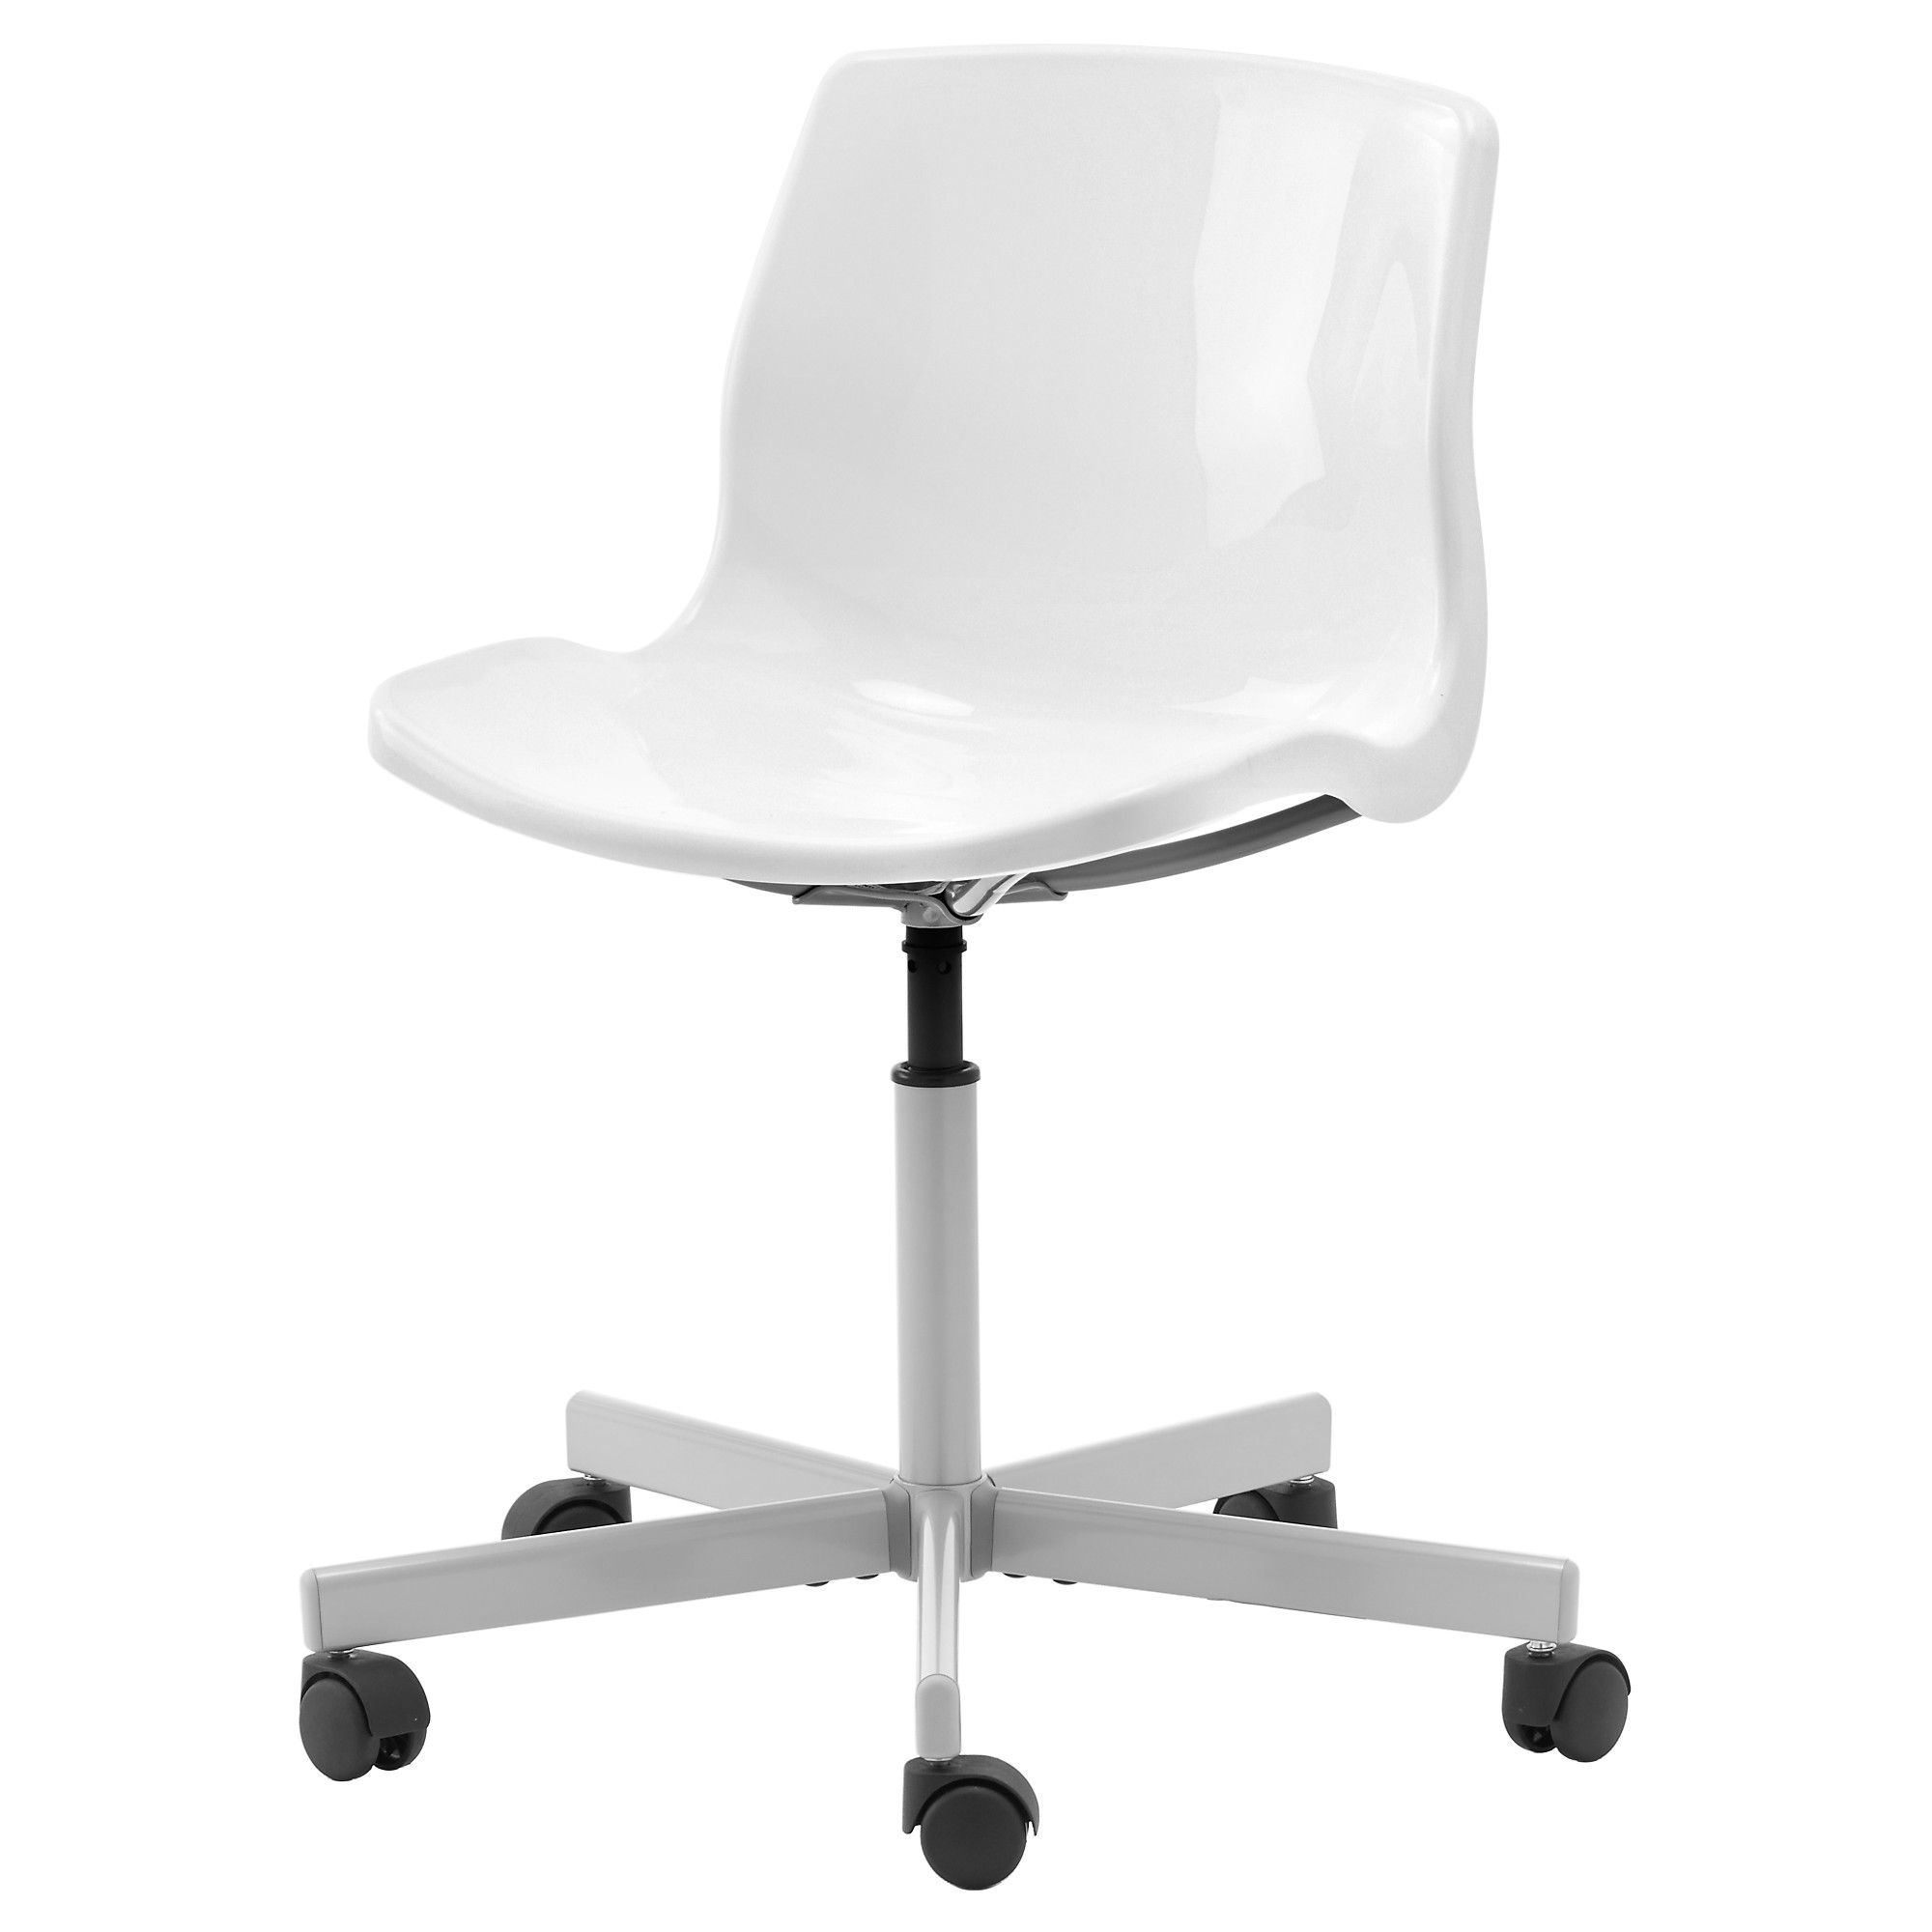 gregor swivel chair vittaryd white. SNILLE Swivel Chair, White Gregor Chair Vittaryd ,